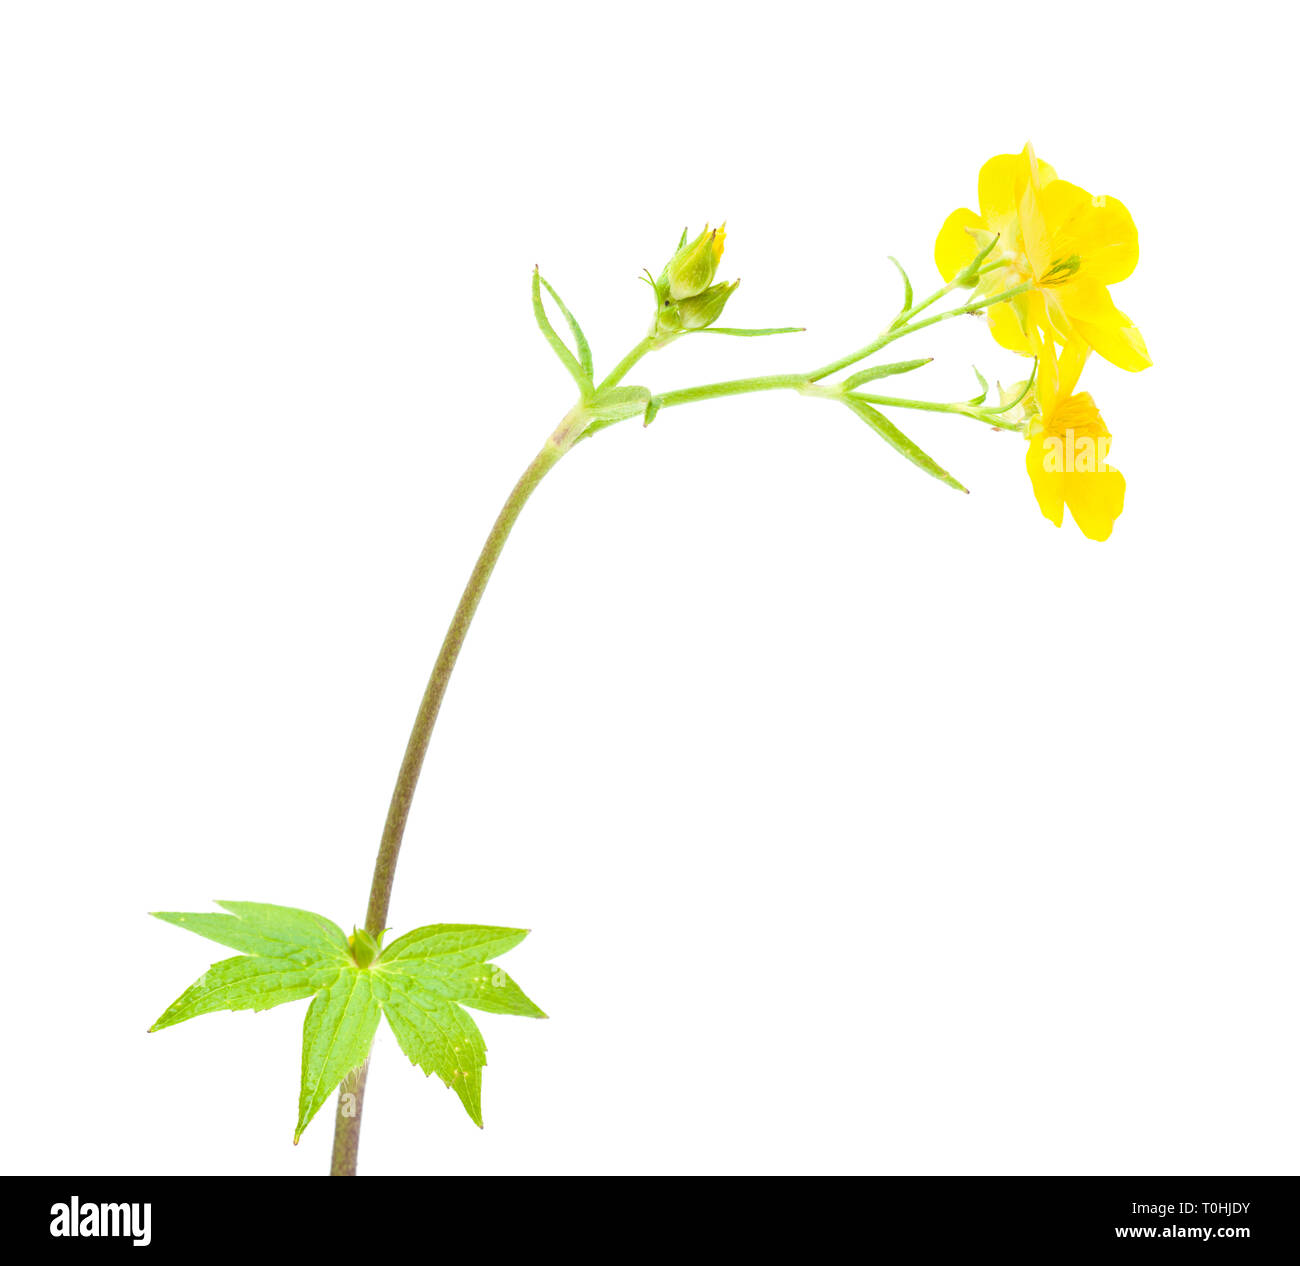 flora of Gran Canaria - Ranunculus cortusifolius, Canary Buttercup Stock Photo